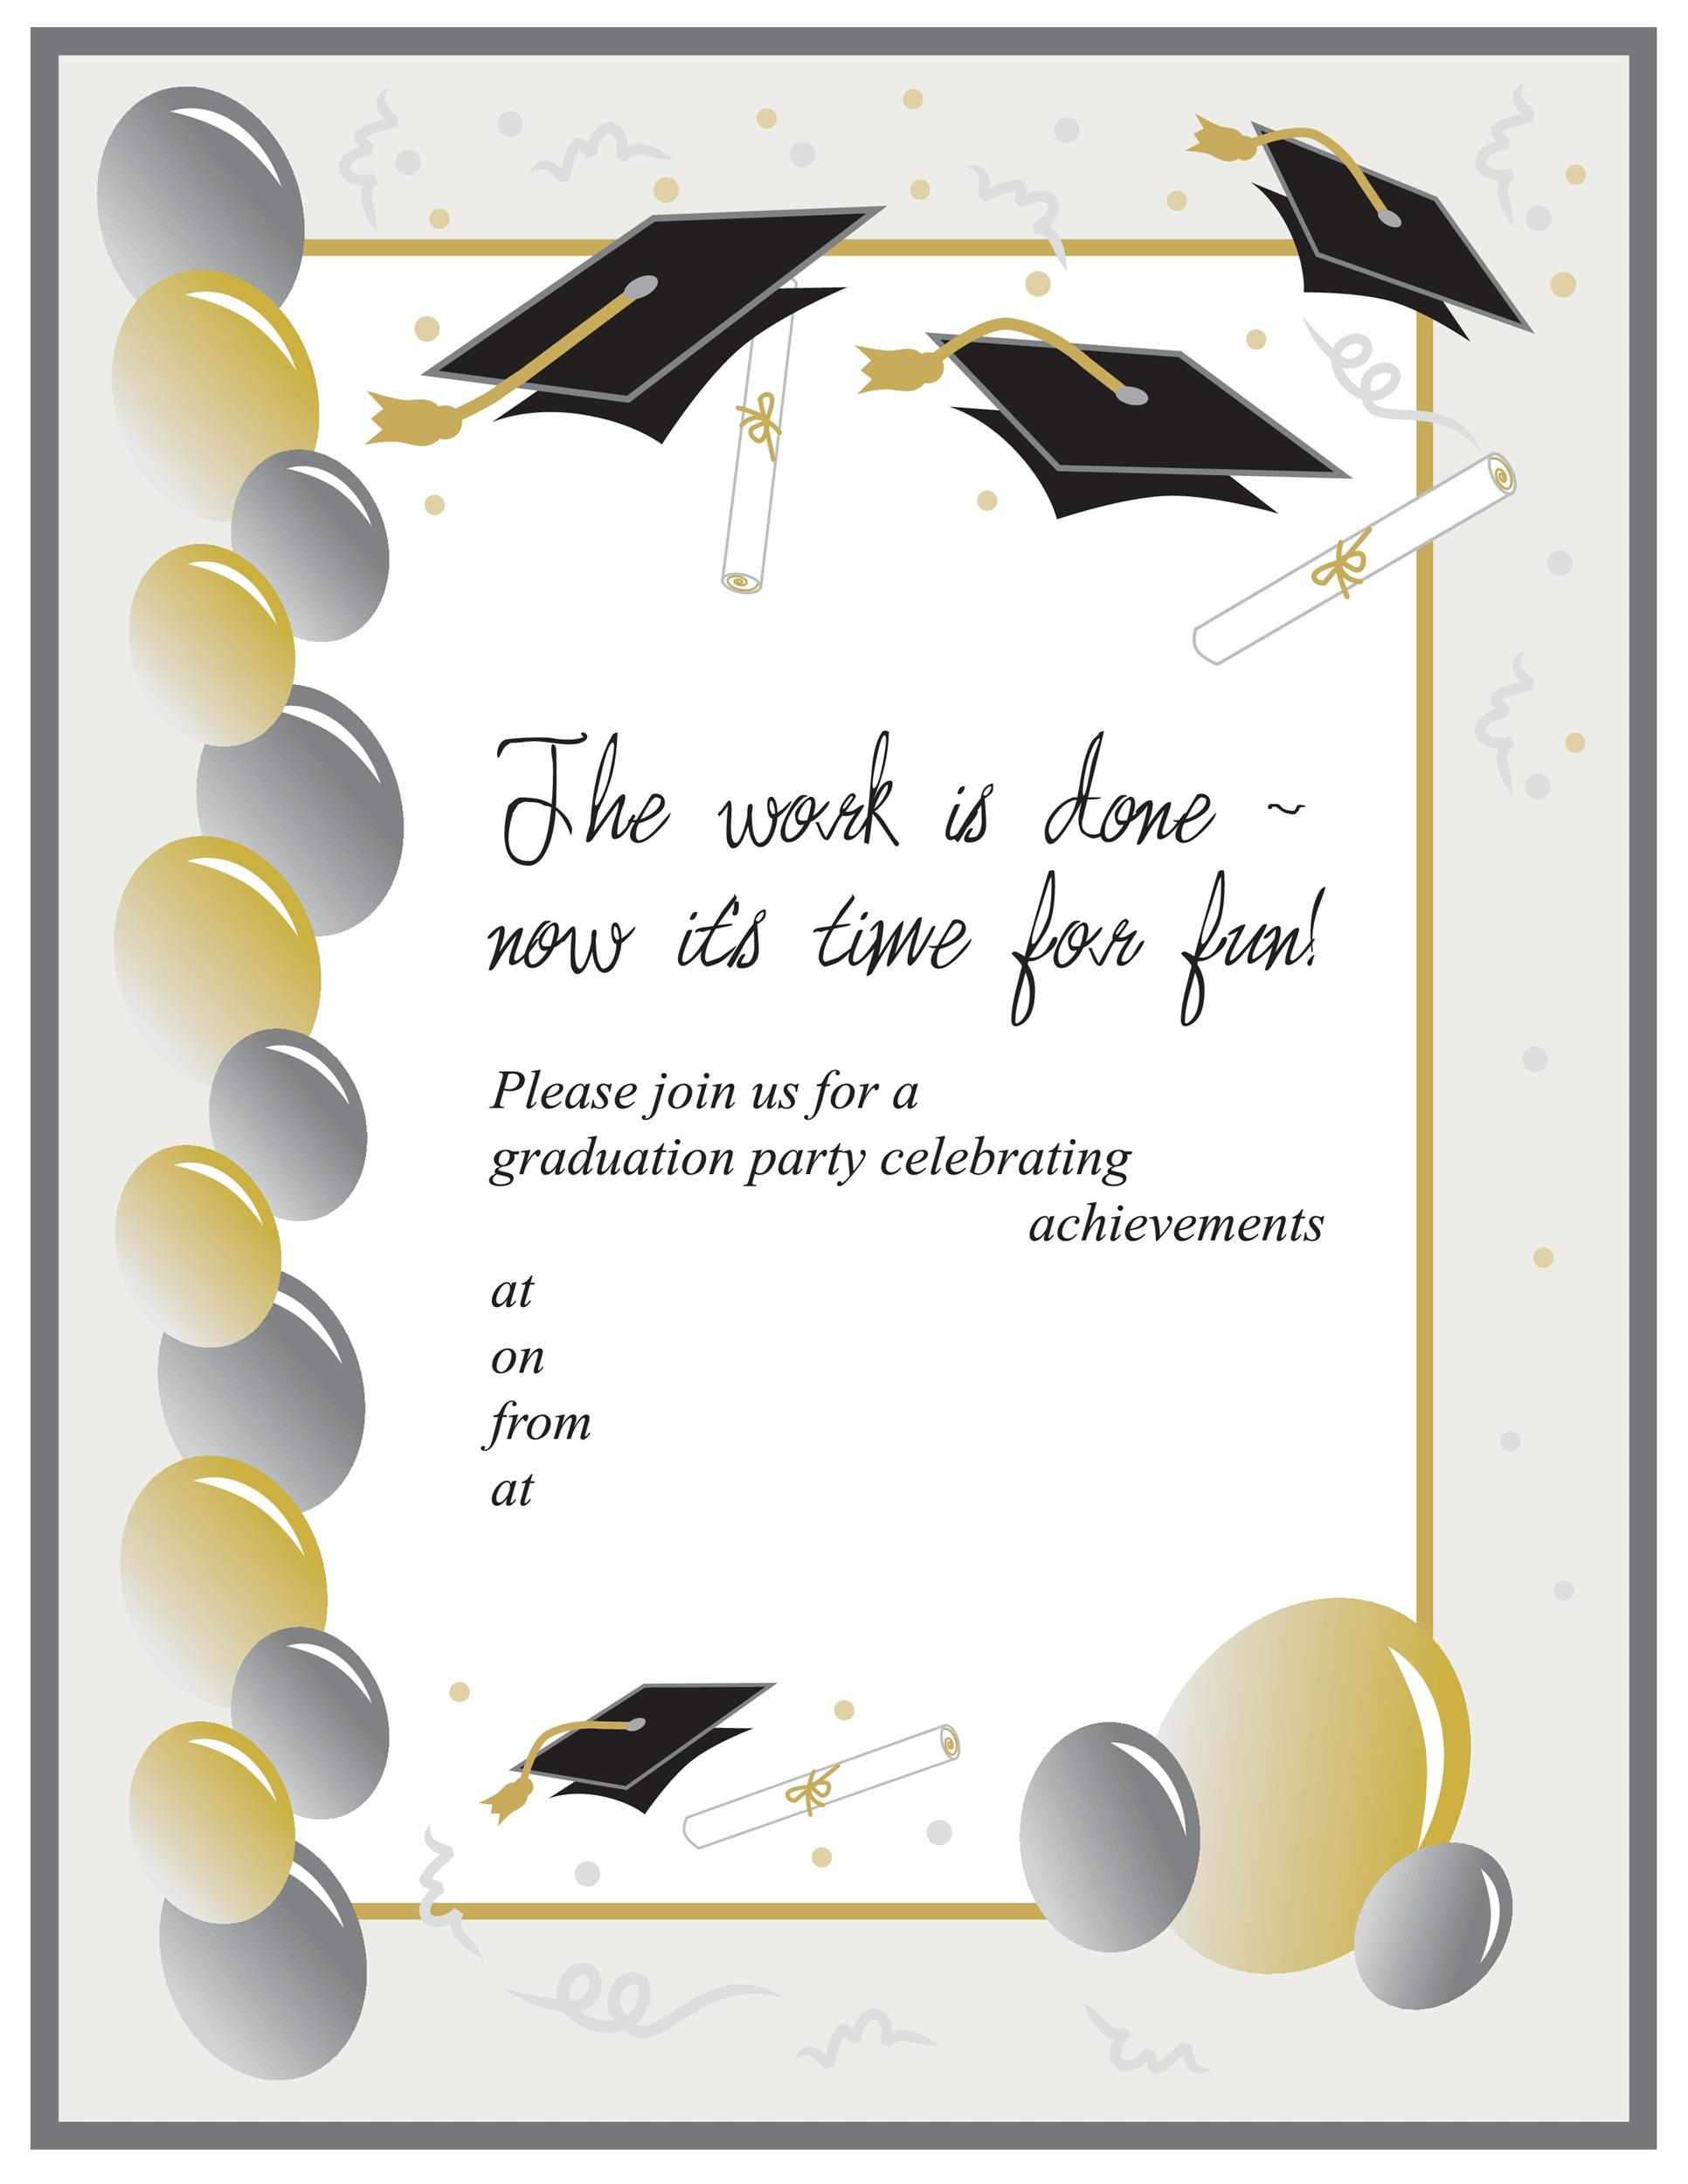 Free Graduation Invitation Templates 02